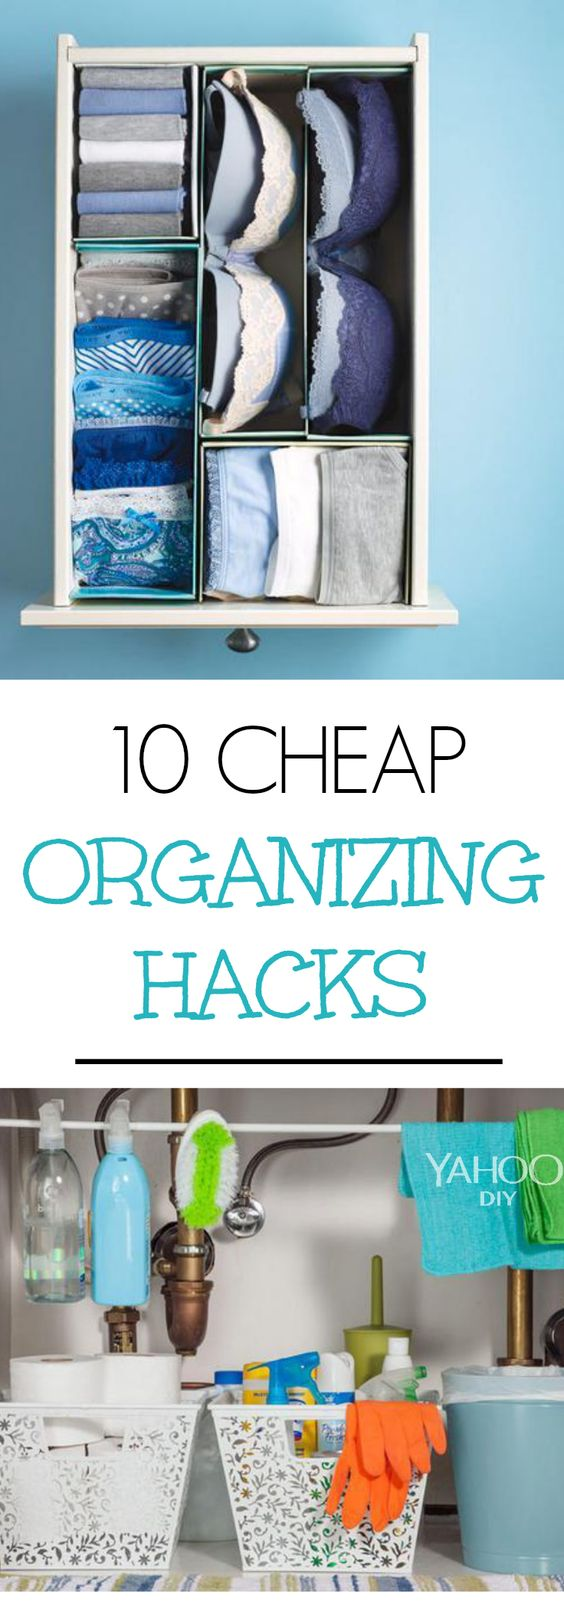 10 cheap organizational #hacks you need to know